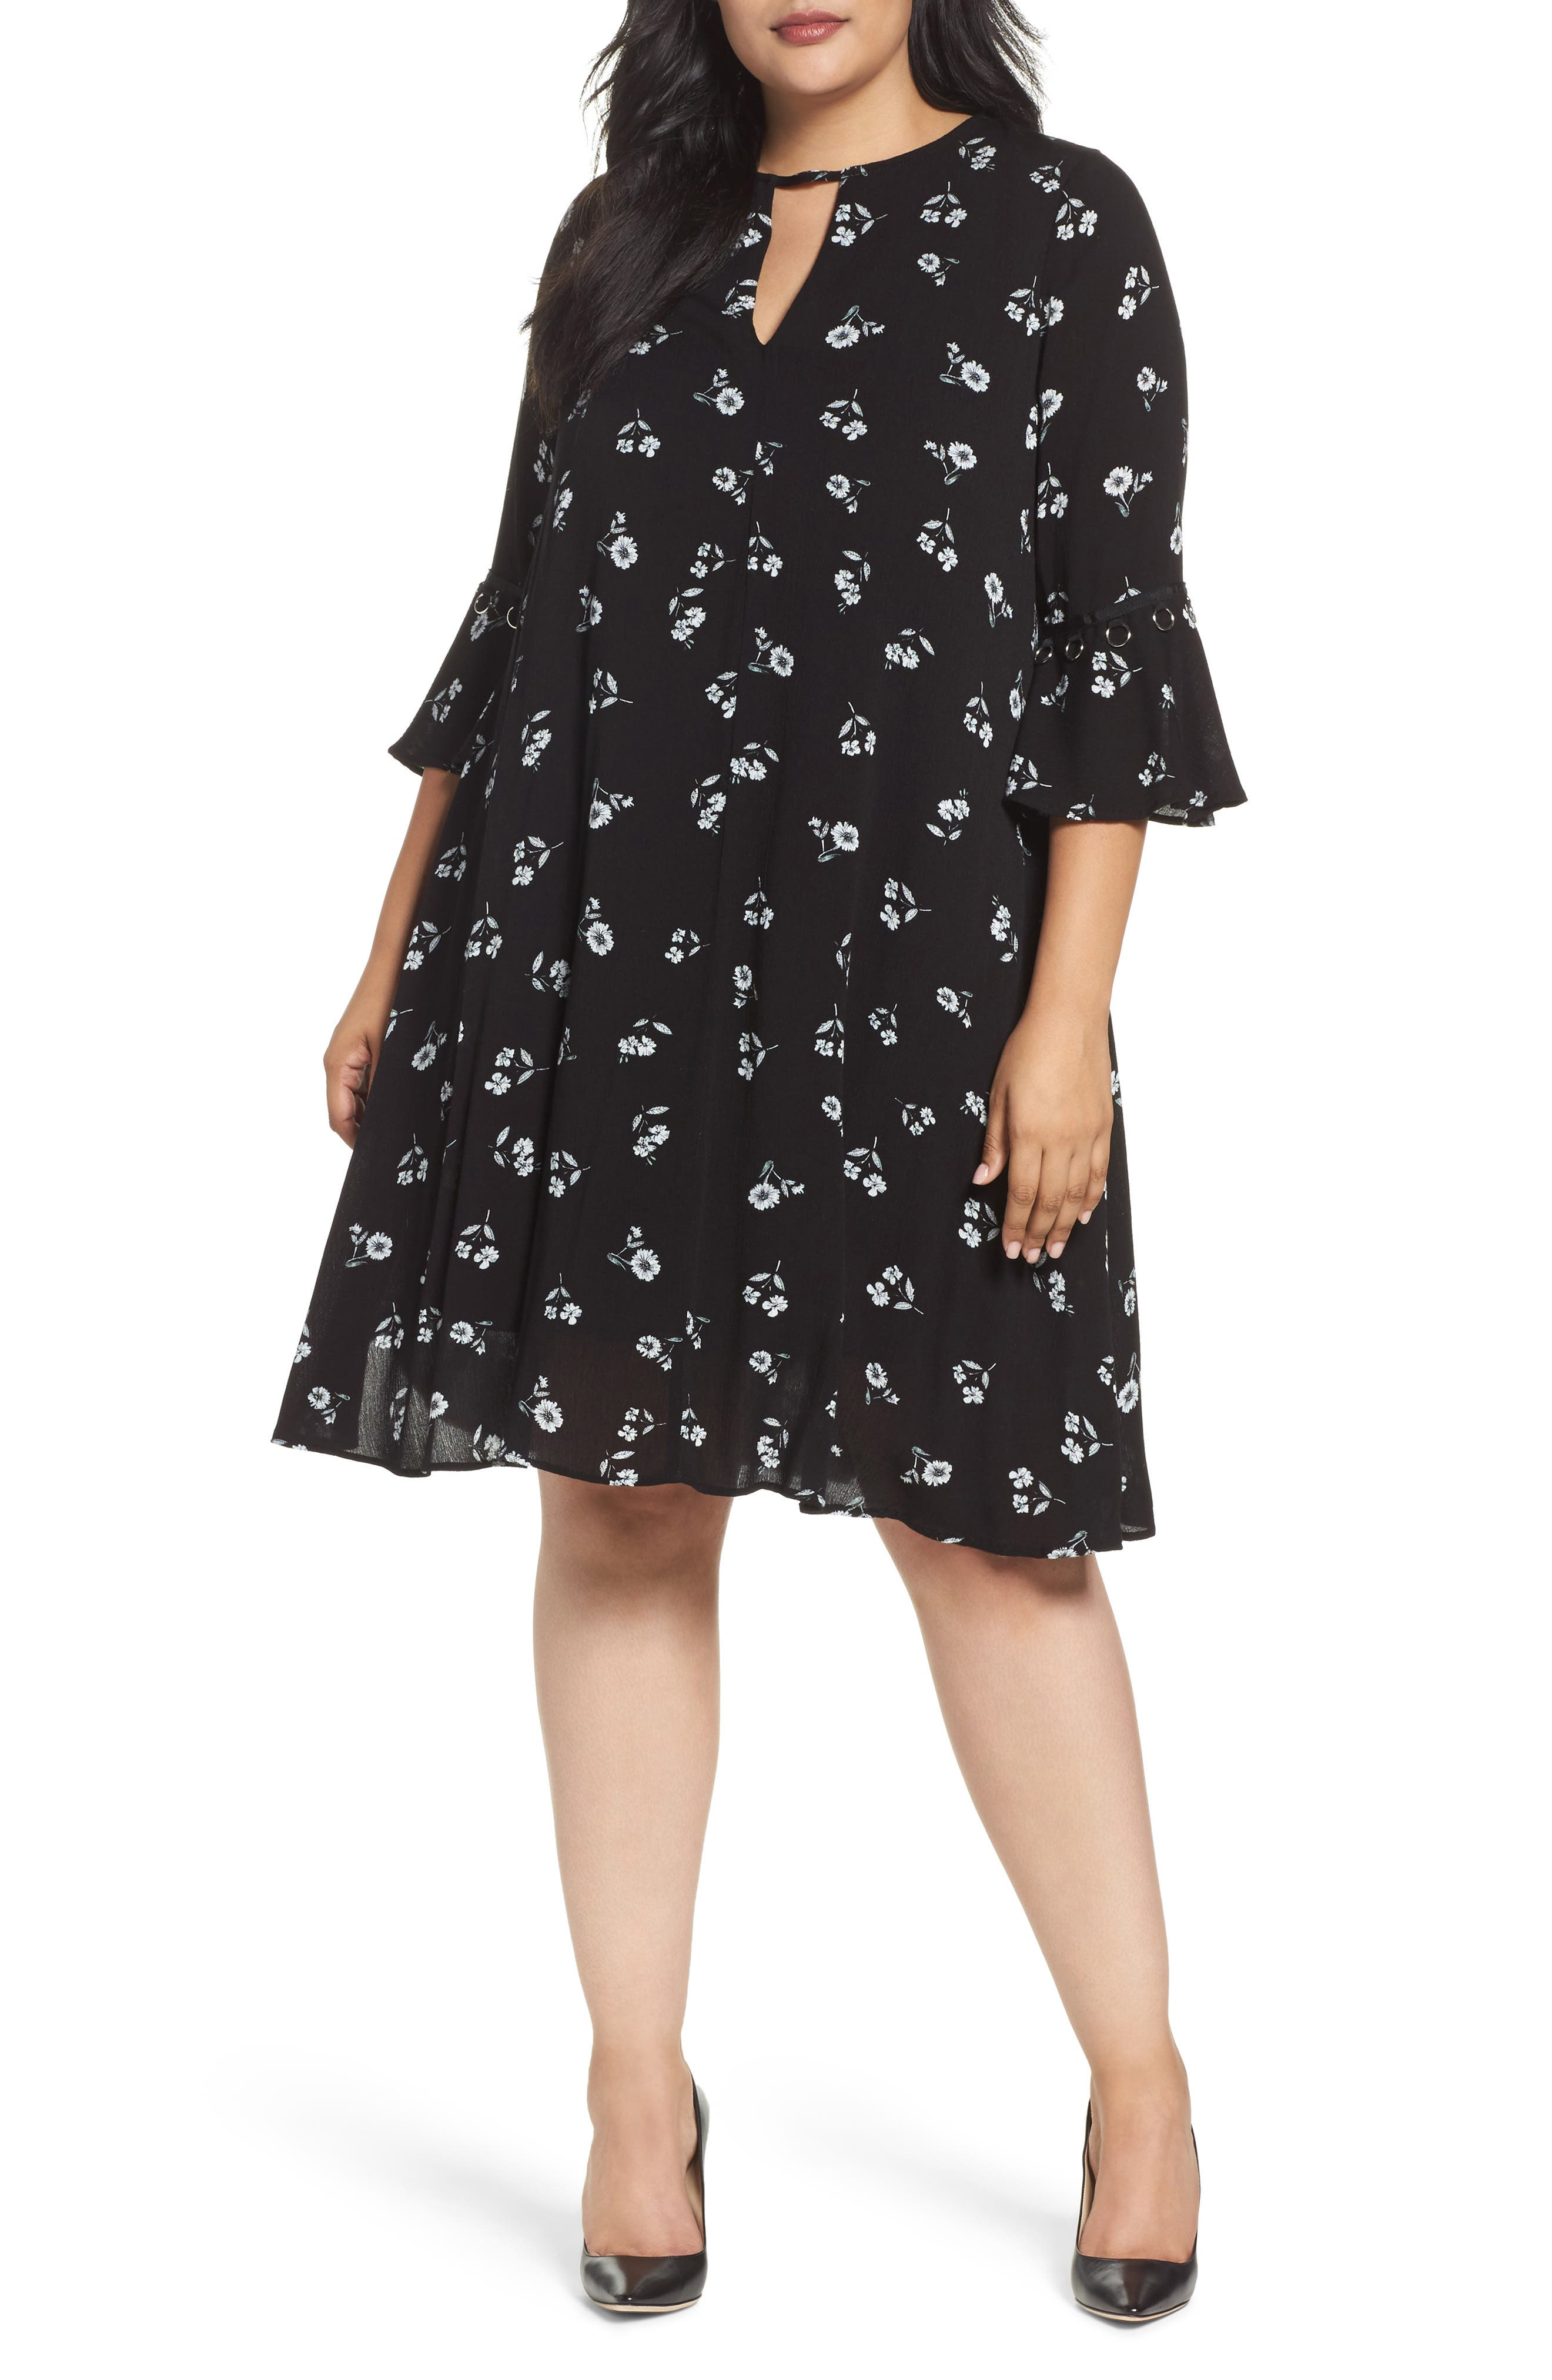 Bell Sleeve Floral Shift Dress,                         Main,                         color, Black White Daisy